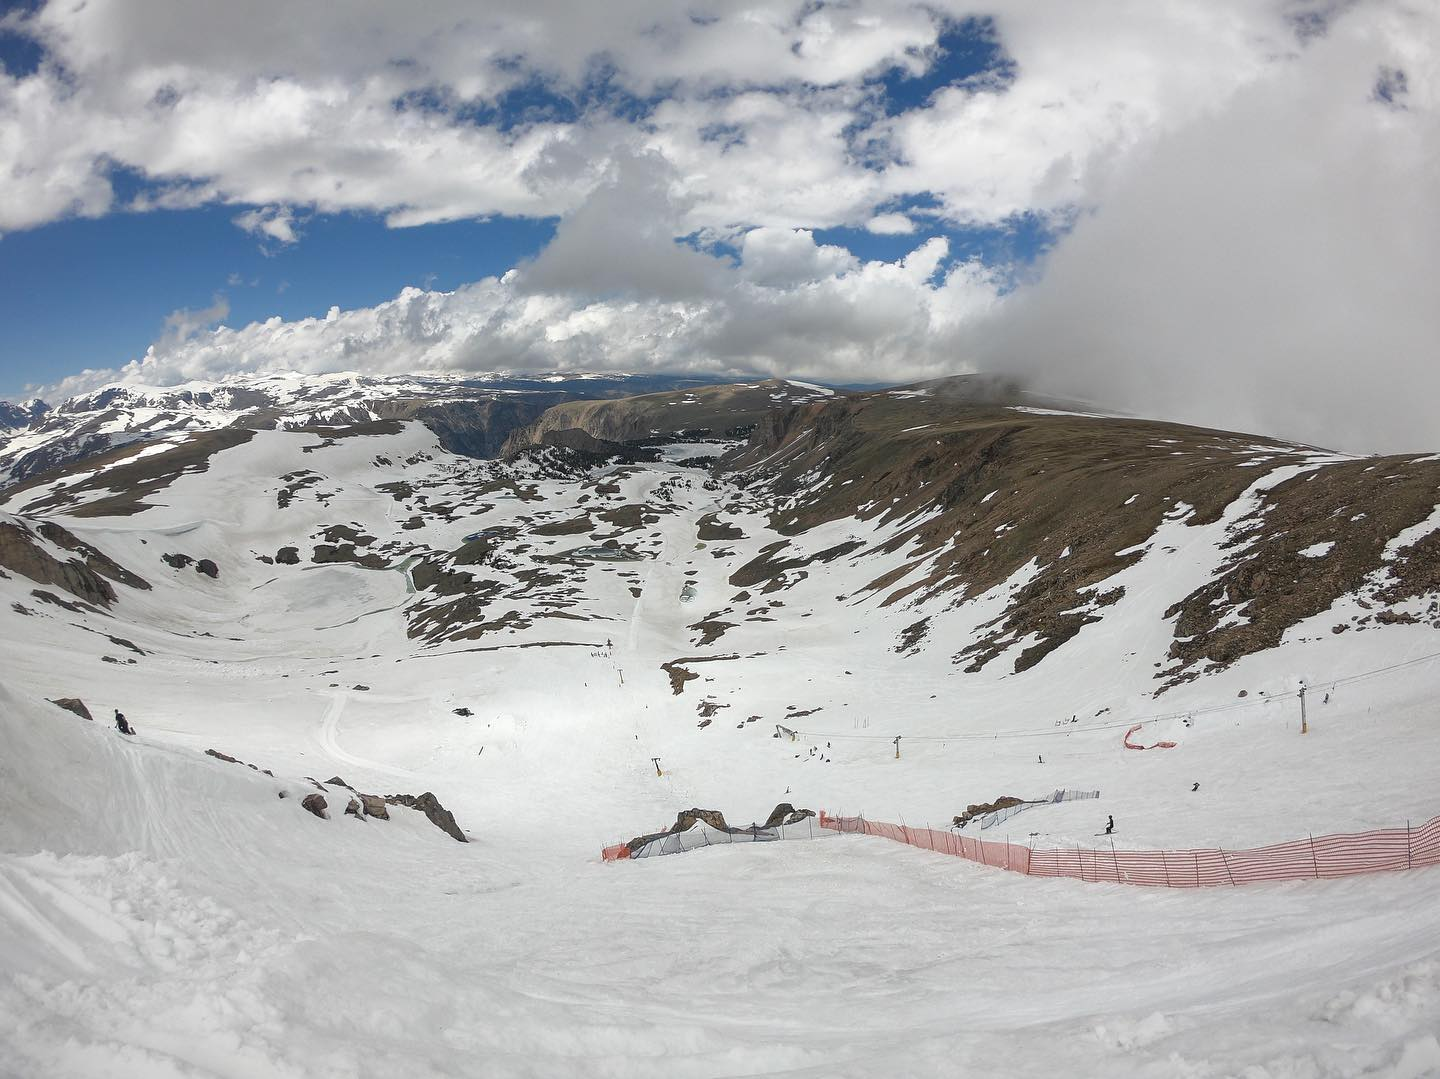 Image of the steep incline at Beartooth Basin Summer Ski in Wyoming